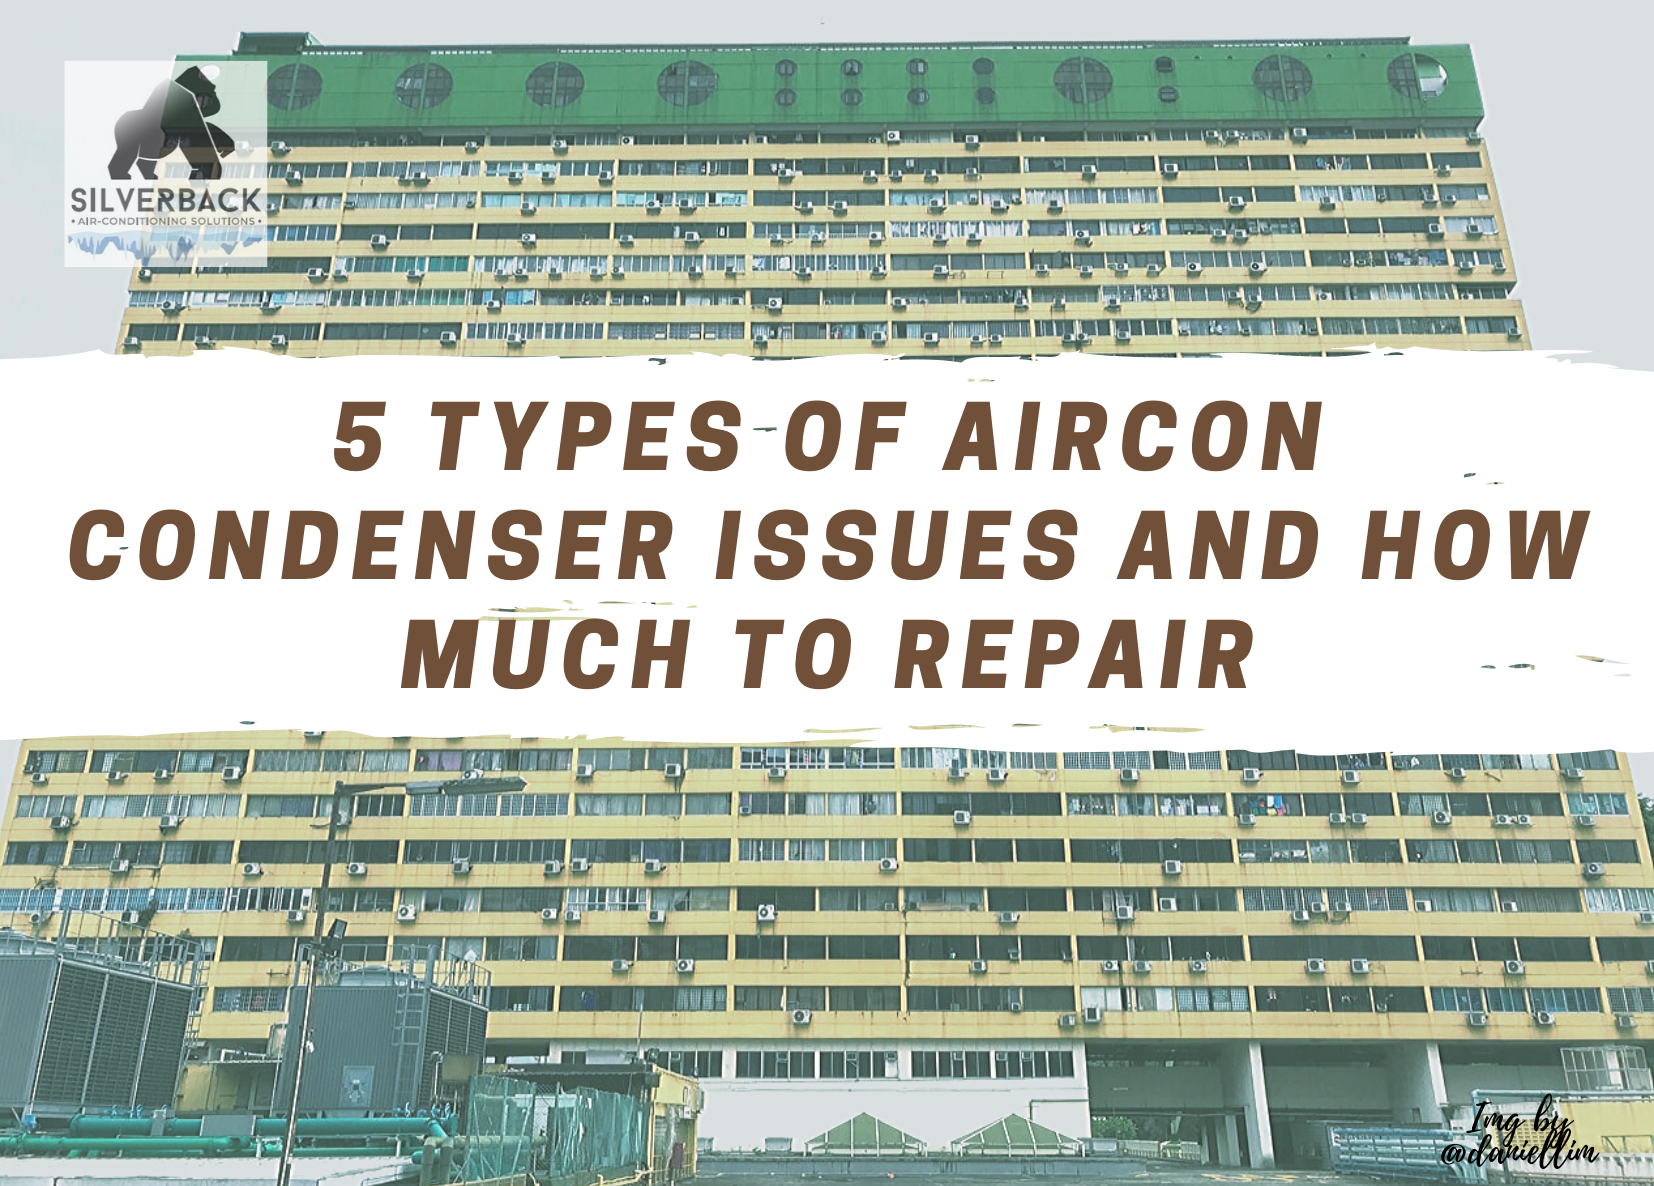 5 types of Aircon Condenser issues and how much to repair